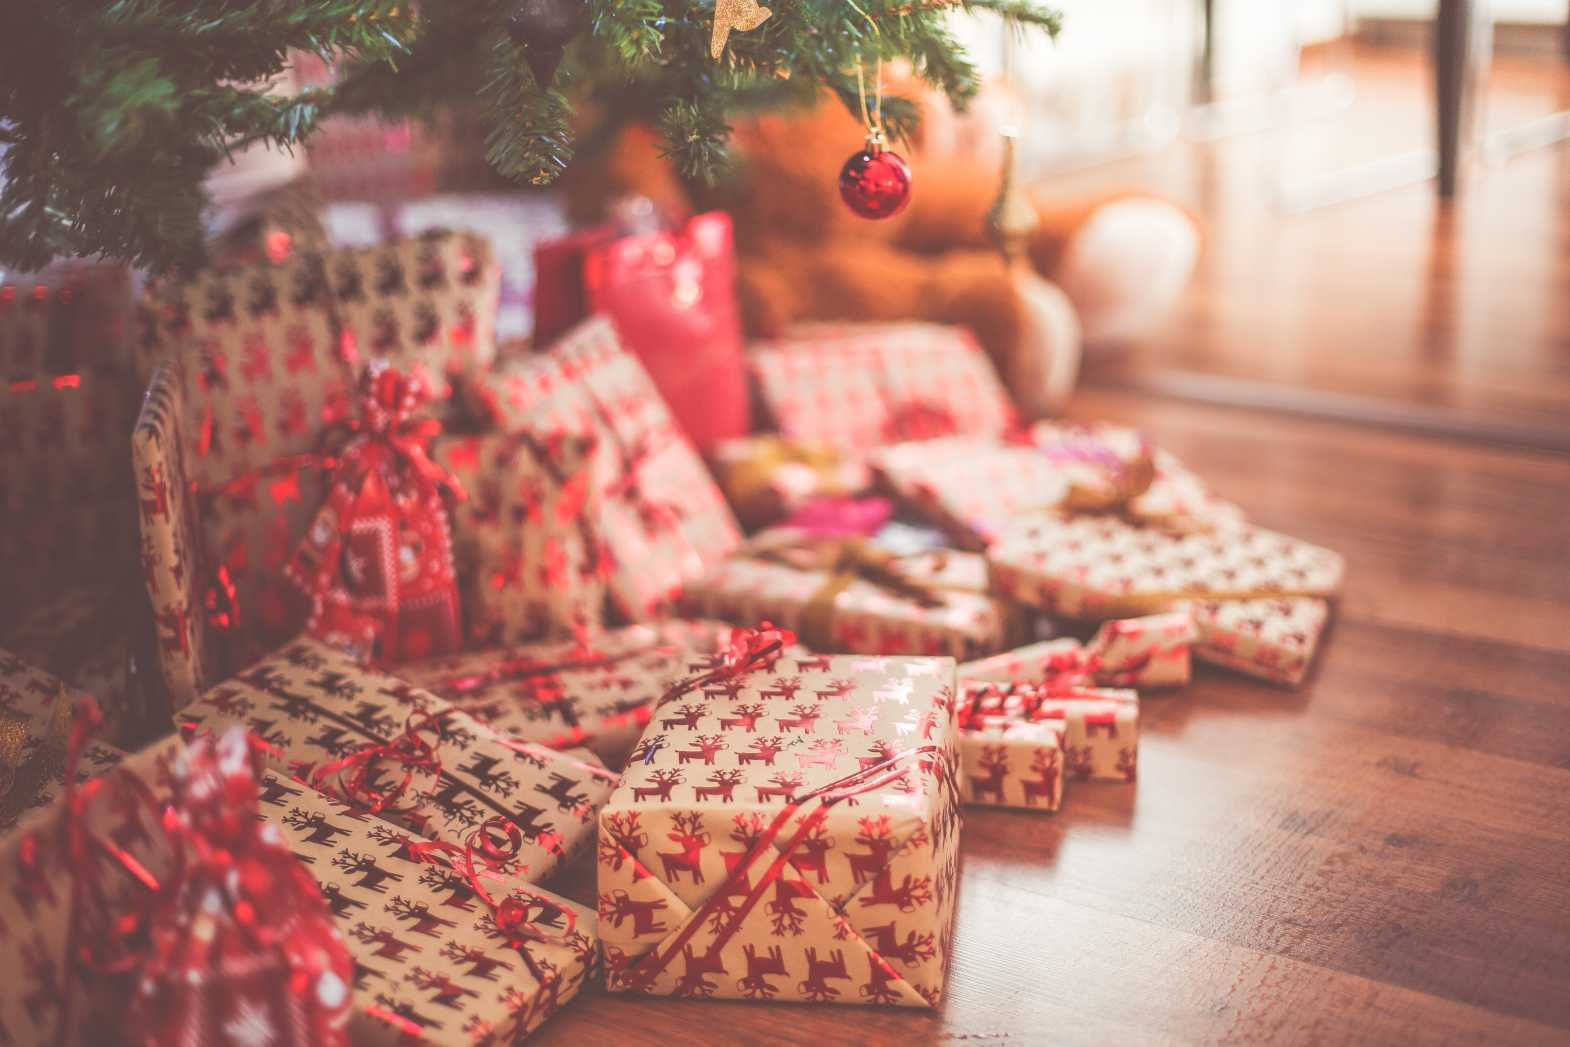 christmas presents free stock image by picjumbo